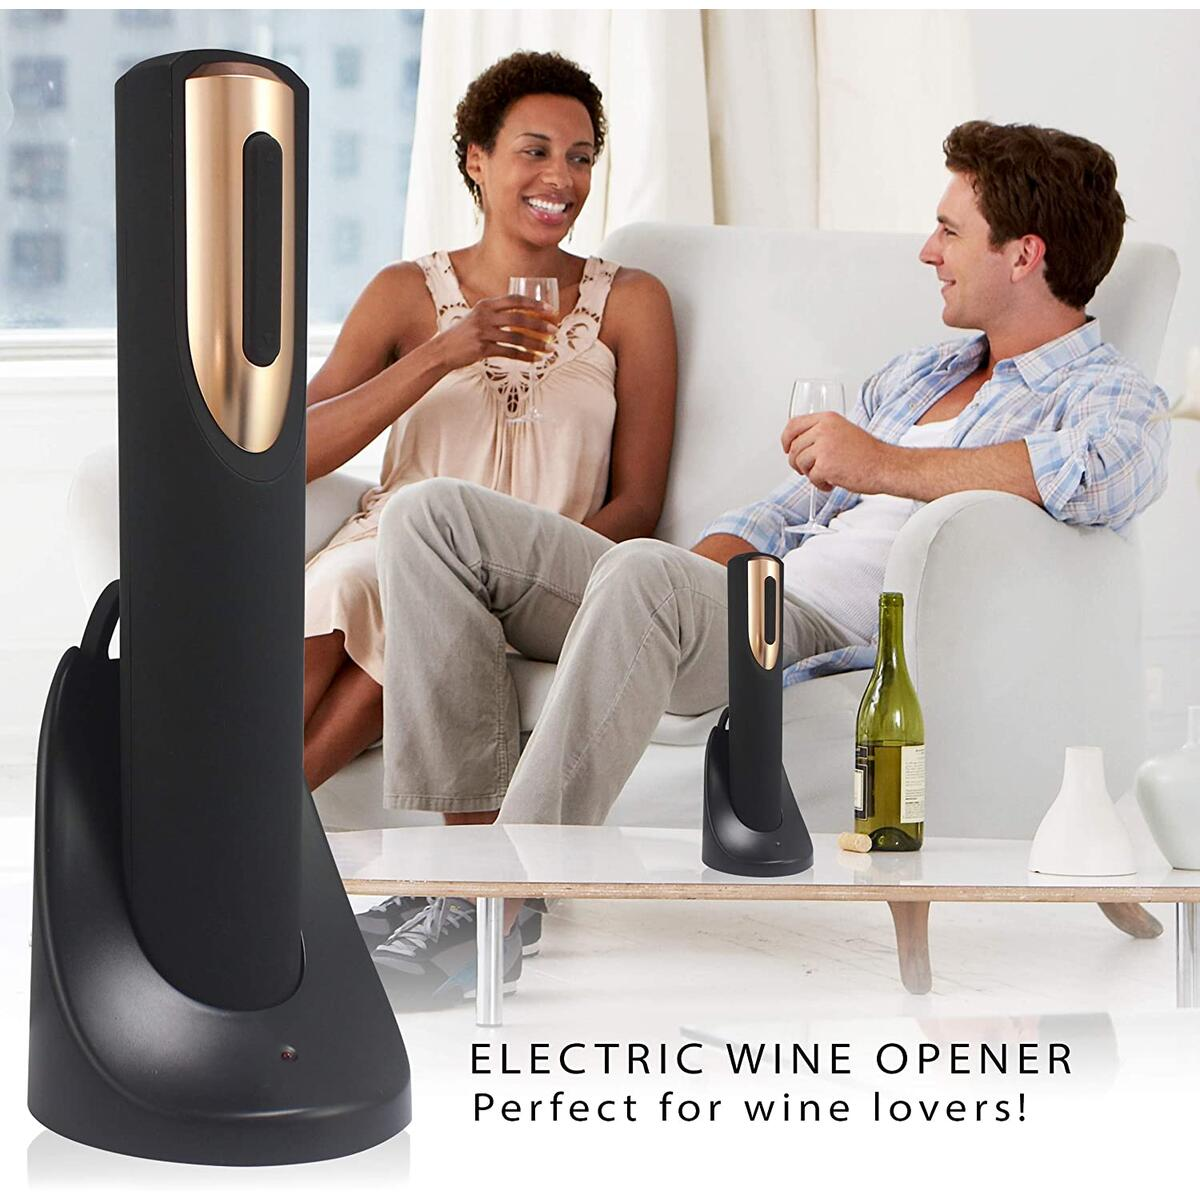 Vin Fresco Electric Wine Opener, Automatic Electric Wine Bottle Corkscrew Opener with Foil Cutter, Rechargeable Wine Openers